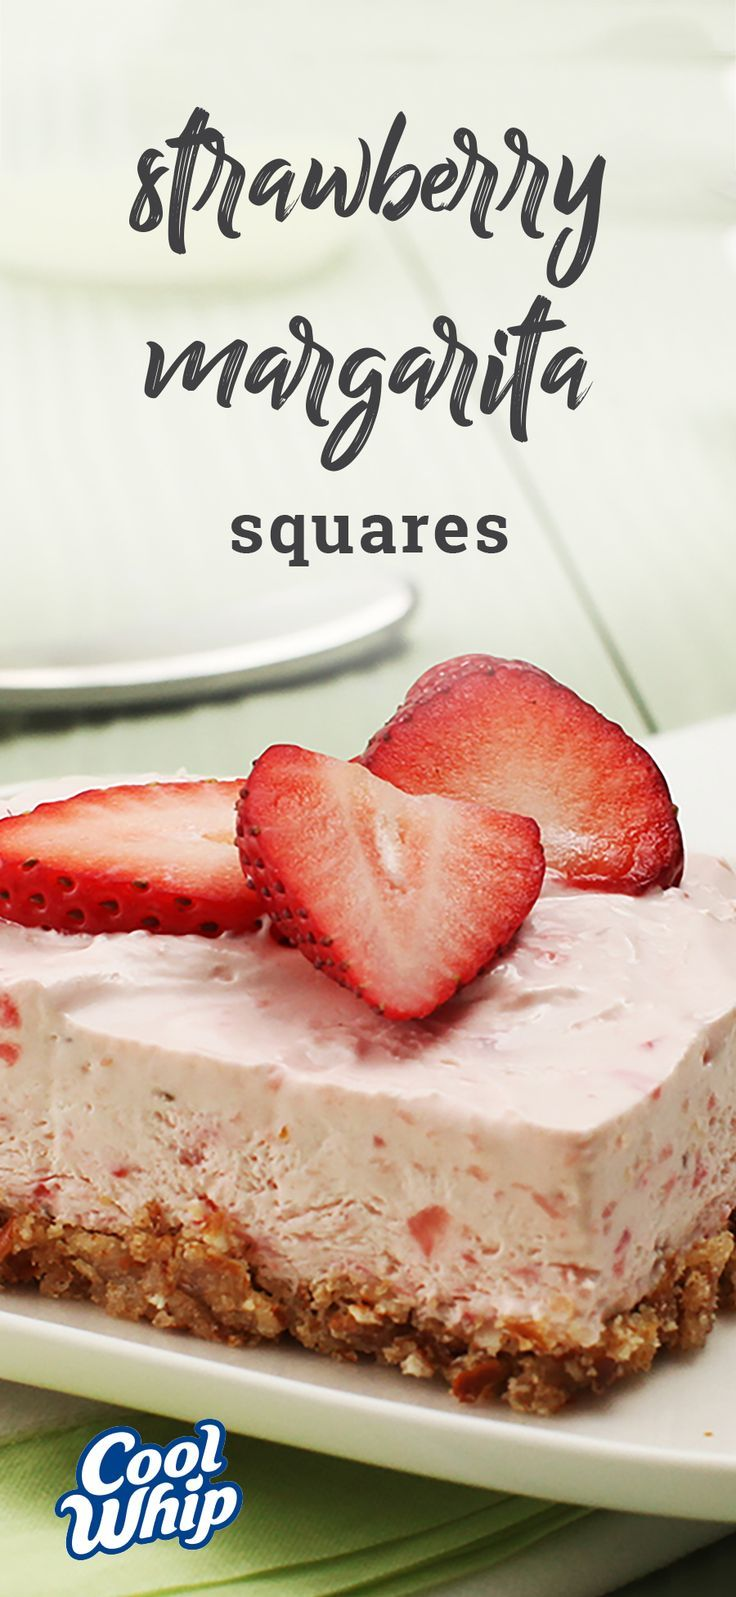 Strawberry Margarita Squares – Enjoy a frozen margarita? This dessert recipe t...   - Dessert Recipes - #Dessert #Enjoy #Frozen #Margarita #recipe #Recipes #SQUARES #Strawberry #frozenmargaritarecipes